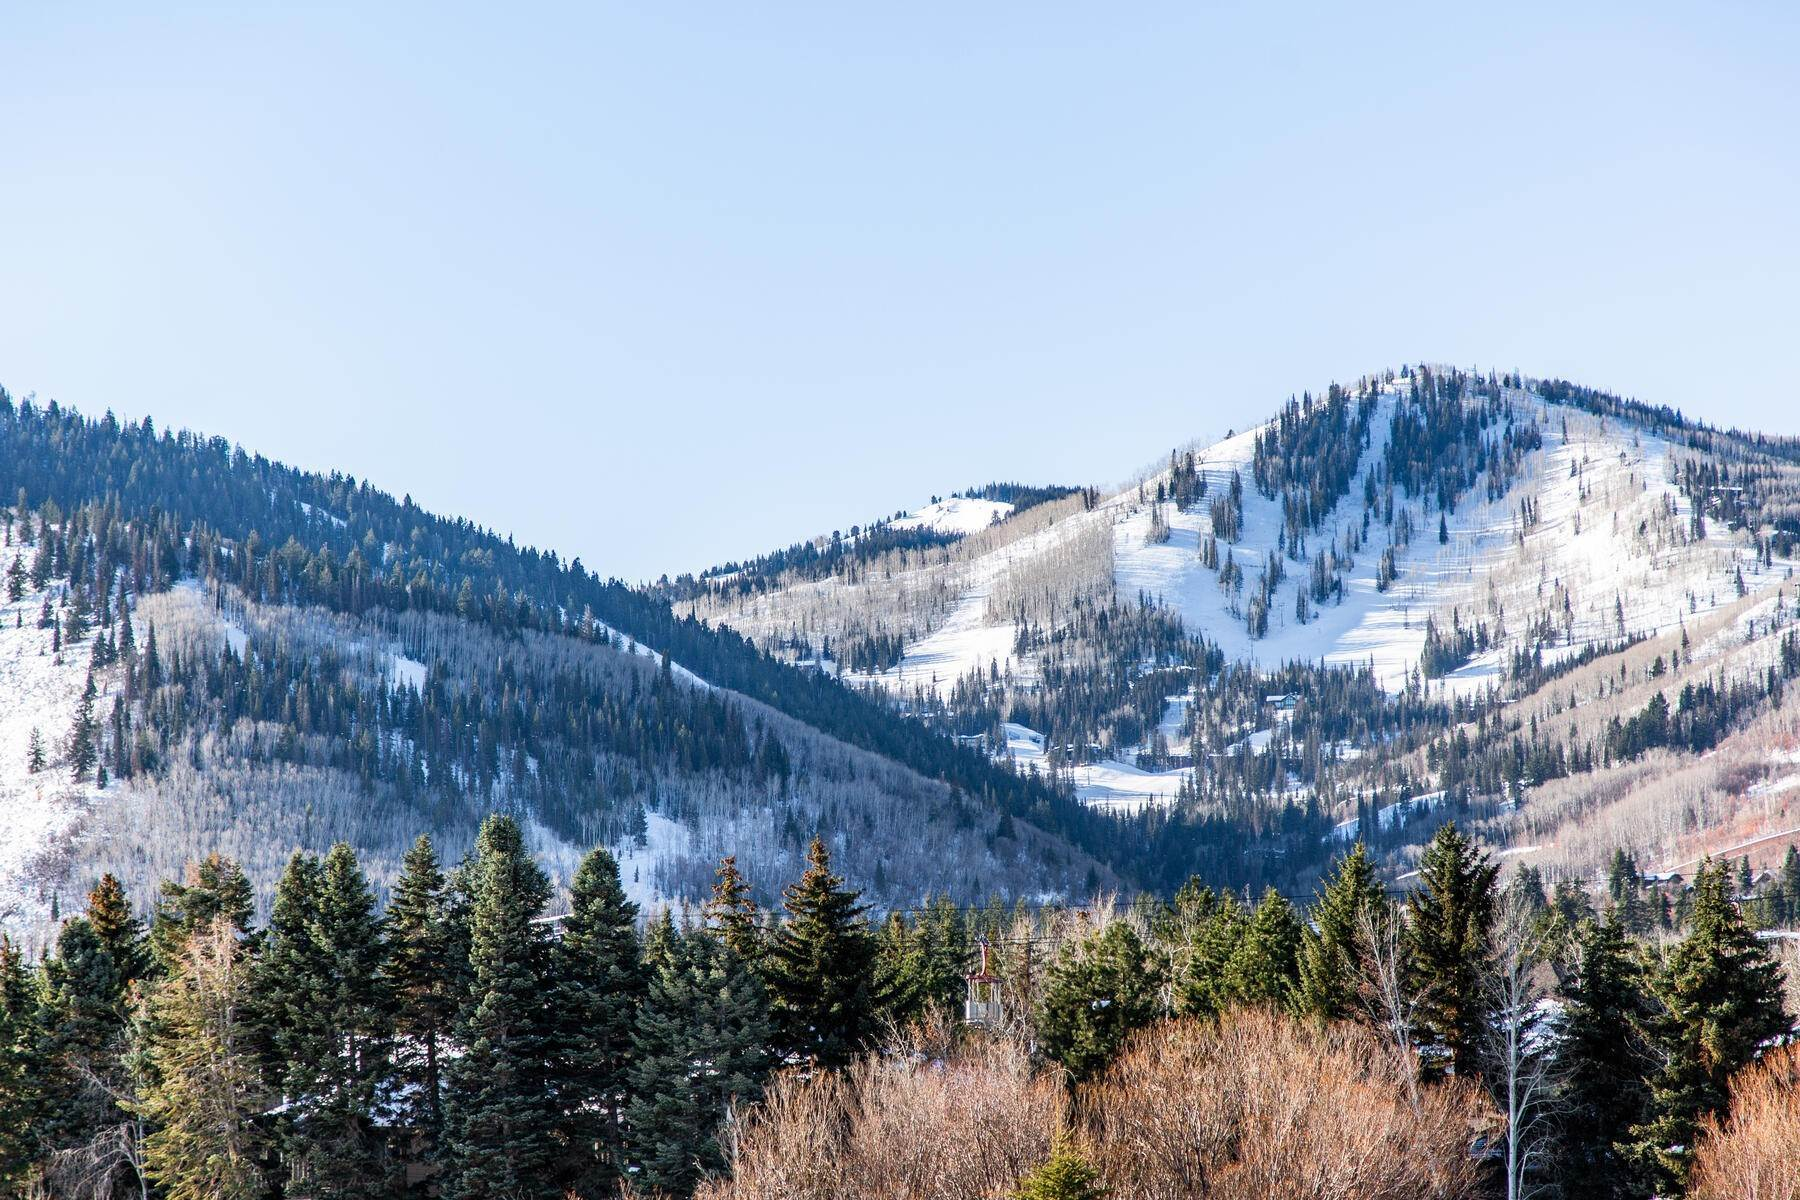 18. Condominiums for Sale at Introducing Park City's Newest Boutique Ski Hotel, The Ascent Park City! 4080 N Cooper Lane #312 Park City, Utah 84098 United States